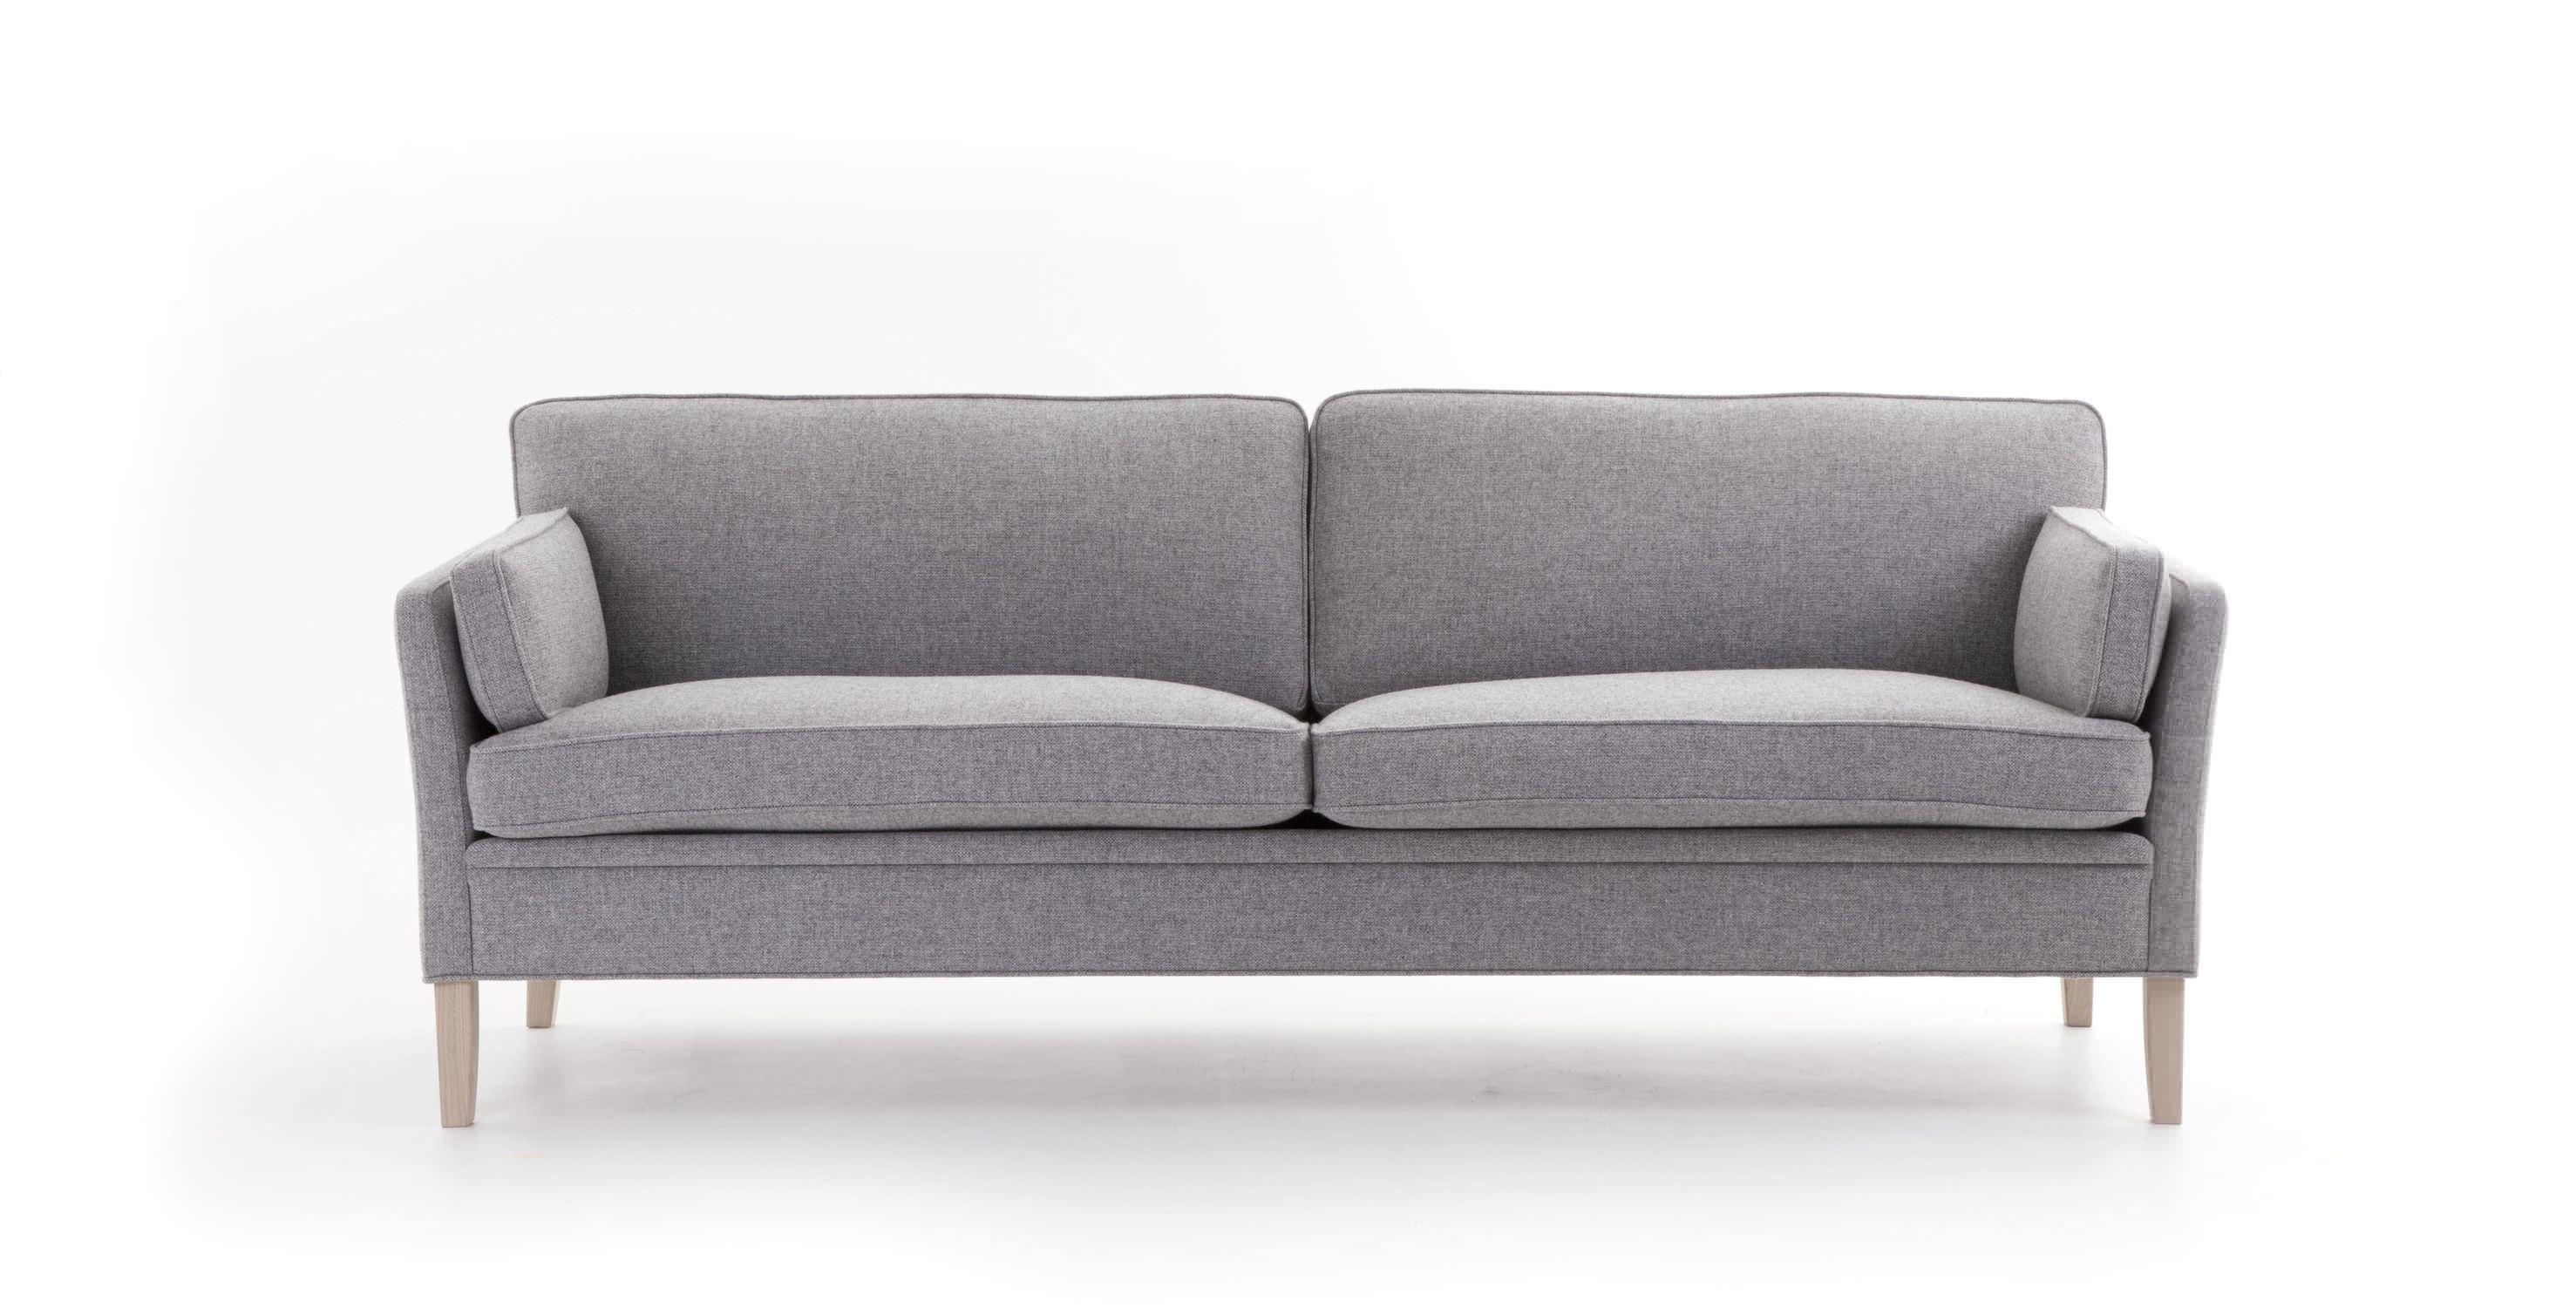 Traditional Sofa / Fabric / 2 Seater / With Removable Cover Intended For Sofas With Removable Covers (Image 18 of 20)